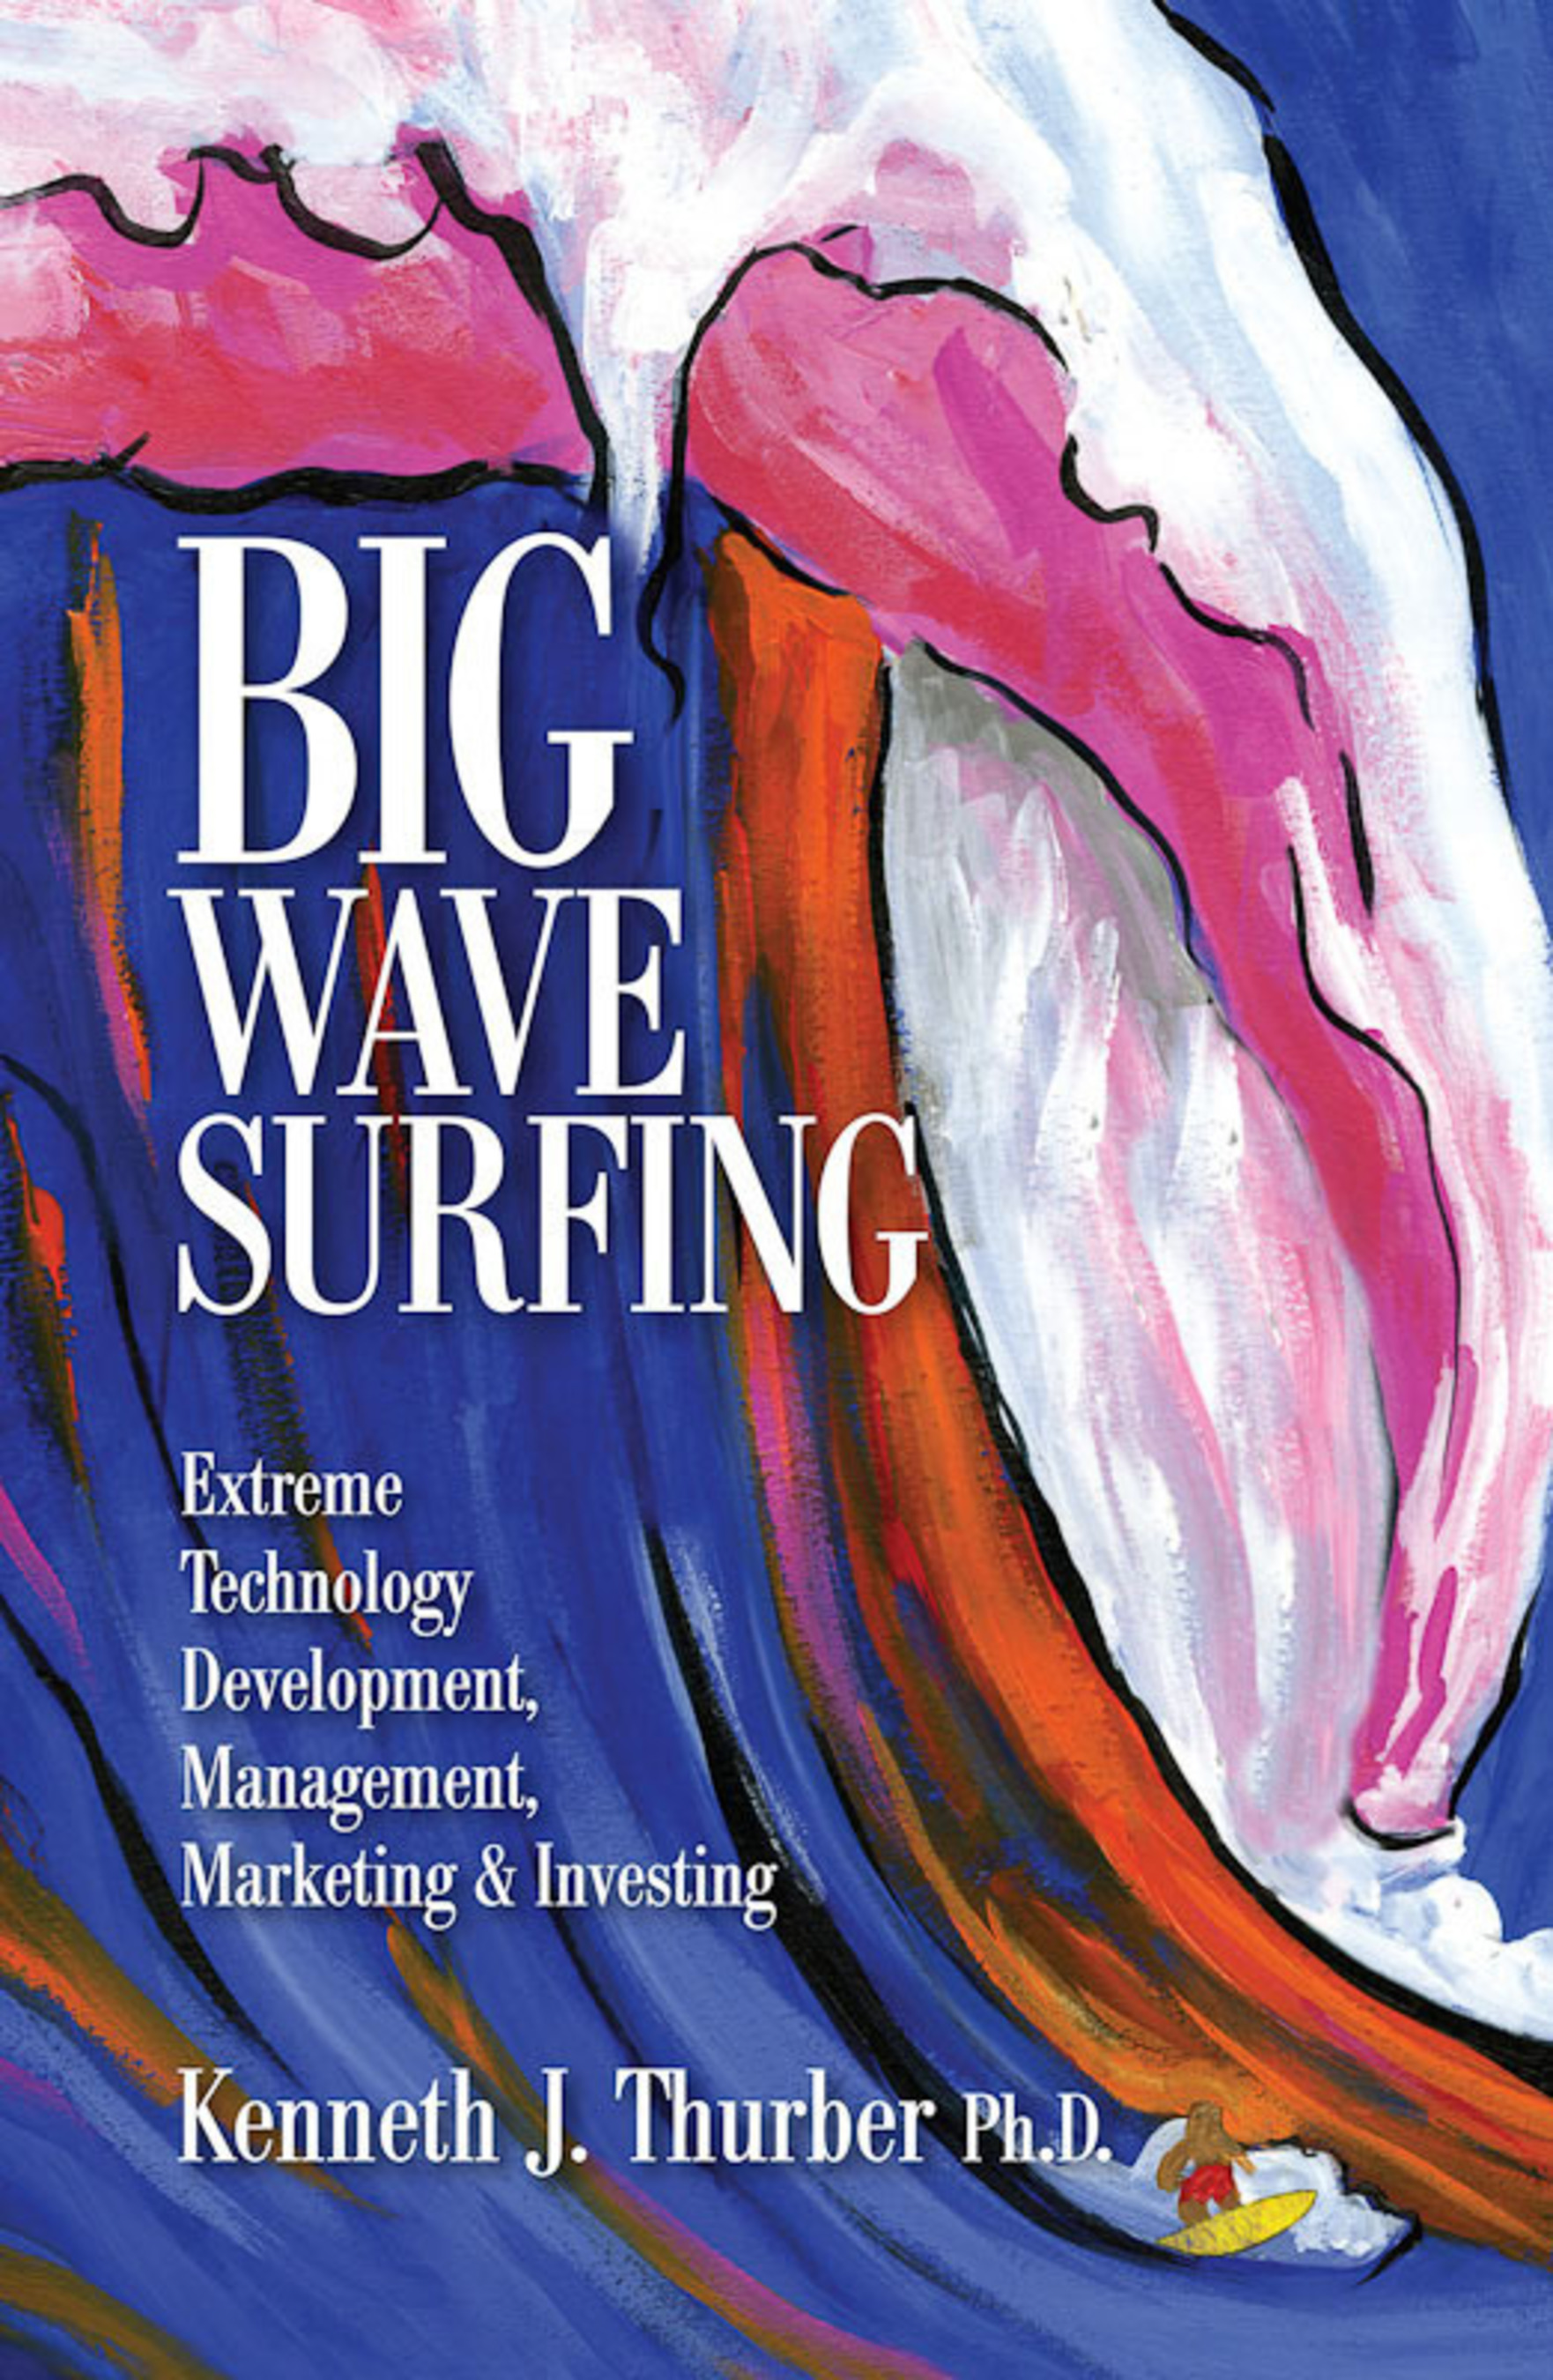 Big Wave Surfing by Kenneth J. Thurber Ph.D.  (PRNewsFoto/Kenneth J. Thurber, Ph.D.)